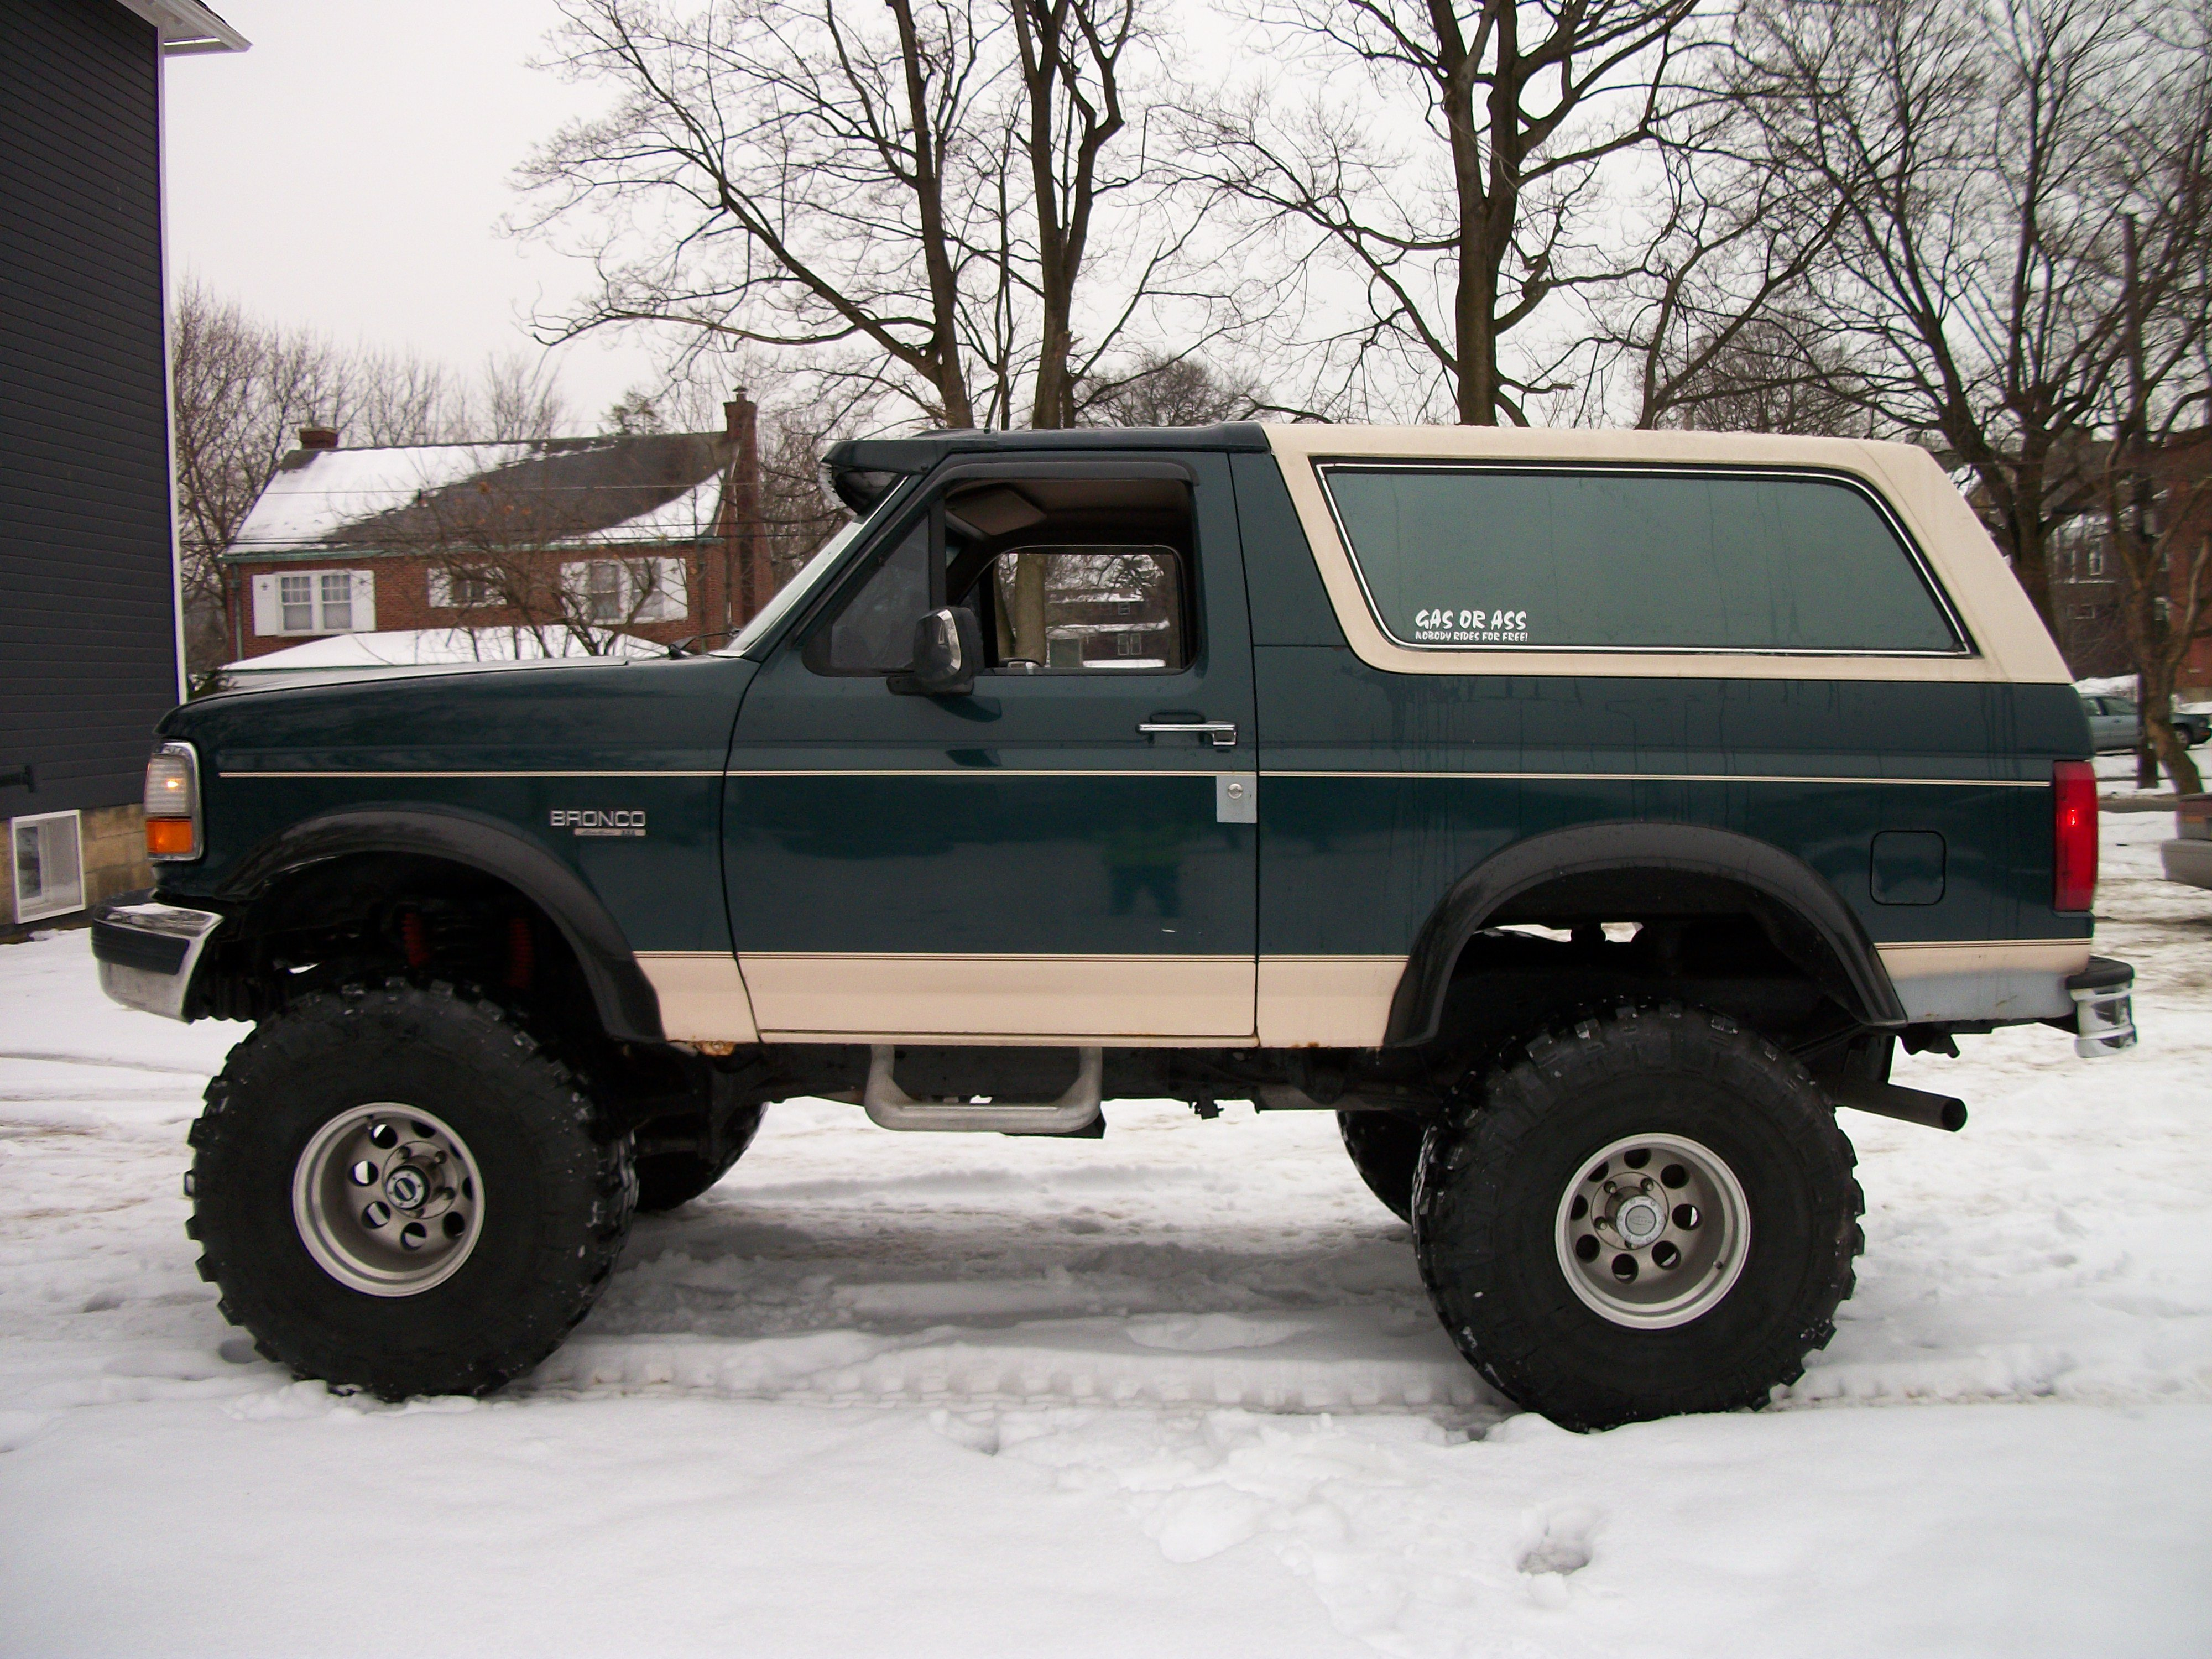 Ford bronco suv 4x4 truck wallpaper 4000x3000 775676 wallpaperup